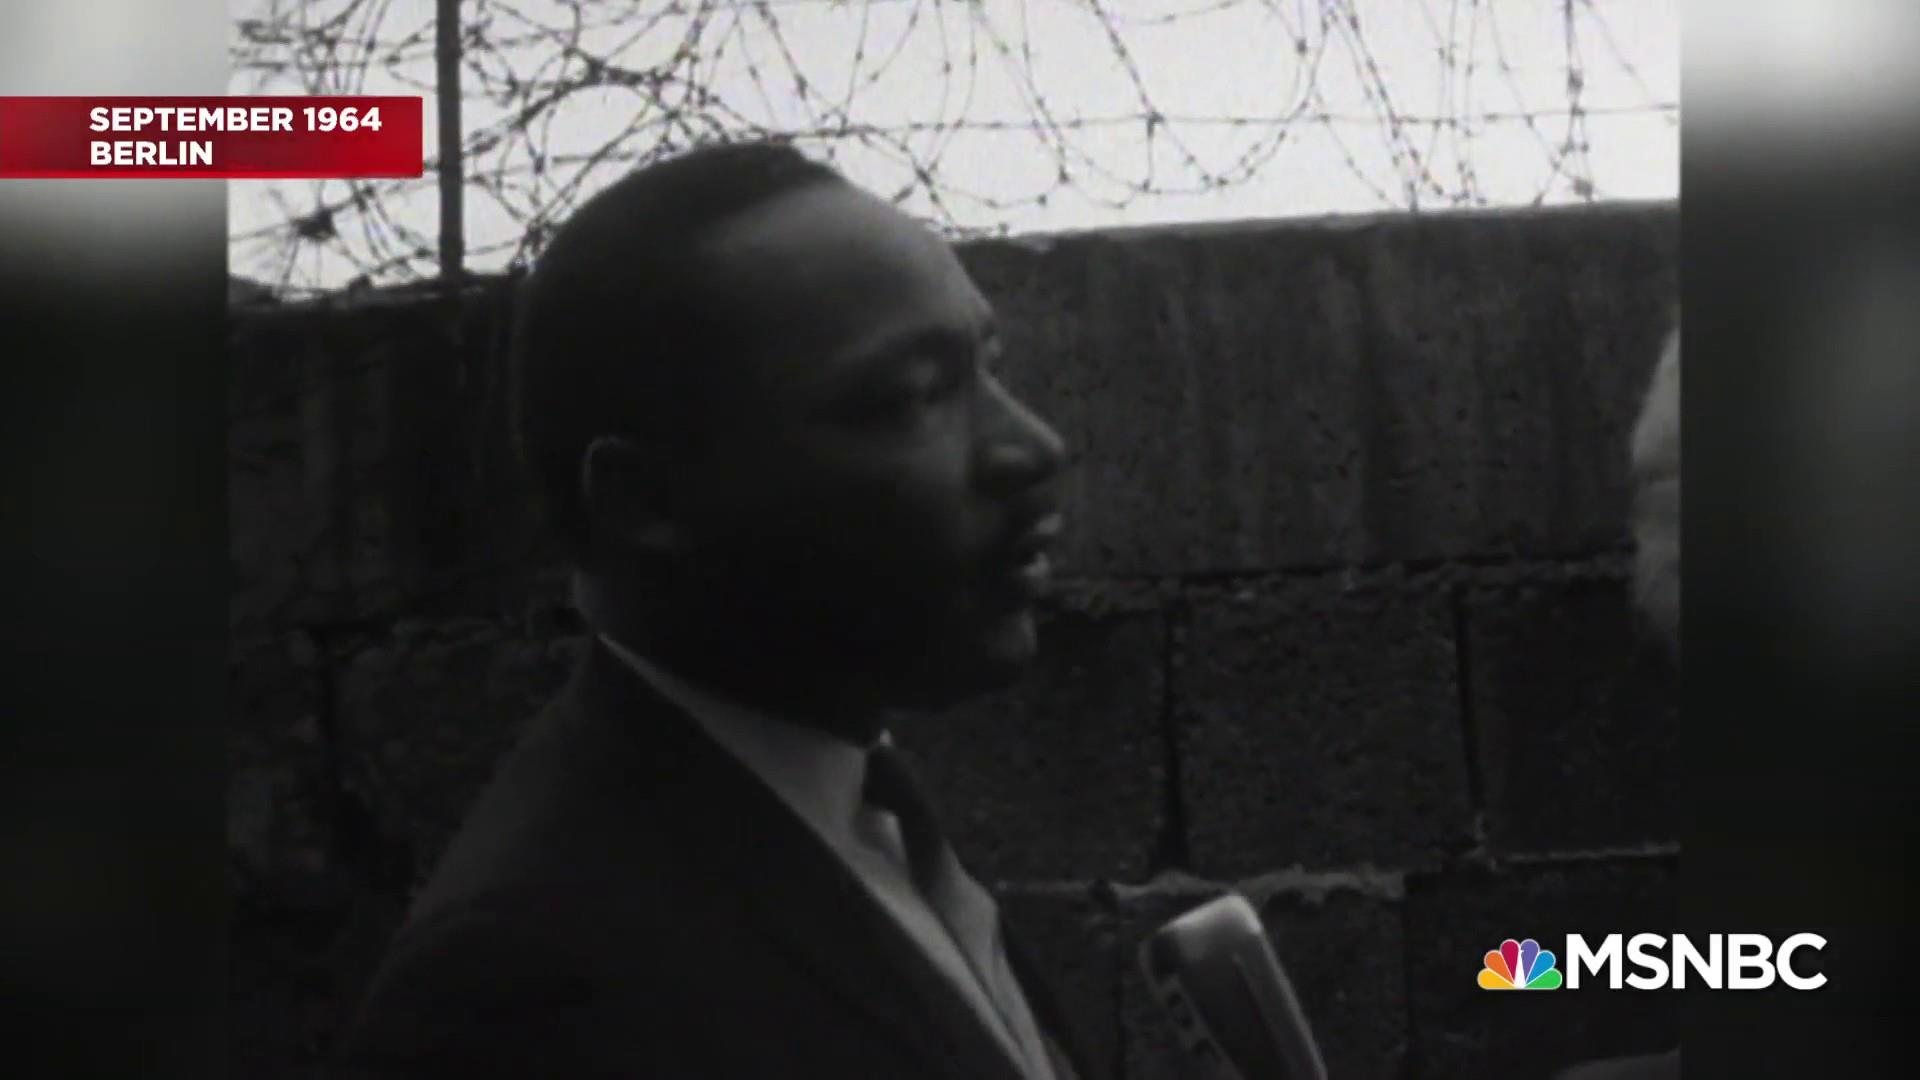 What Martin Luther King, Jr. had to say about walls